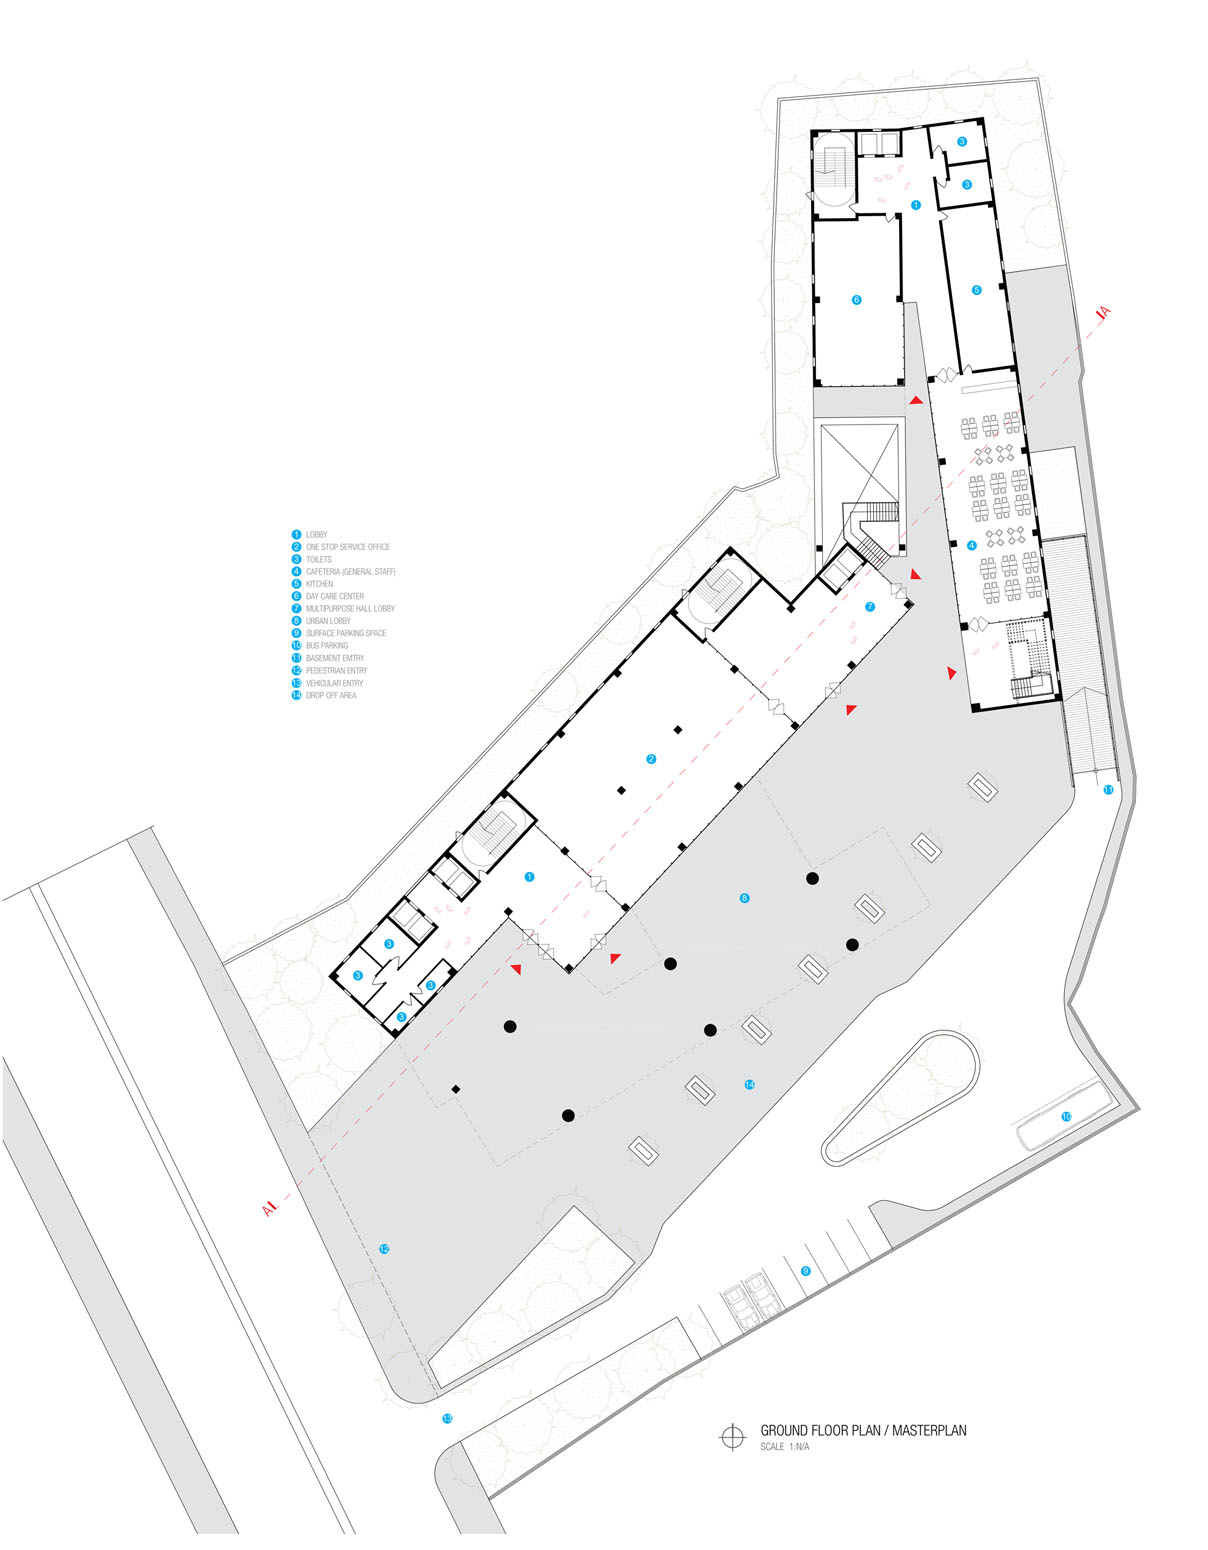 Ground Floor Plan © aakor architecture workshop